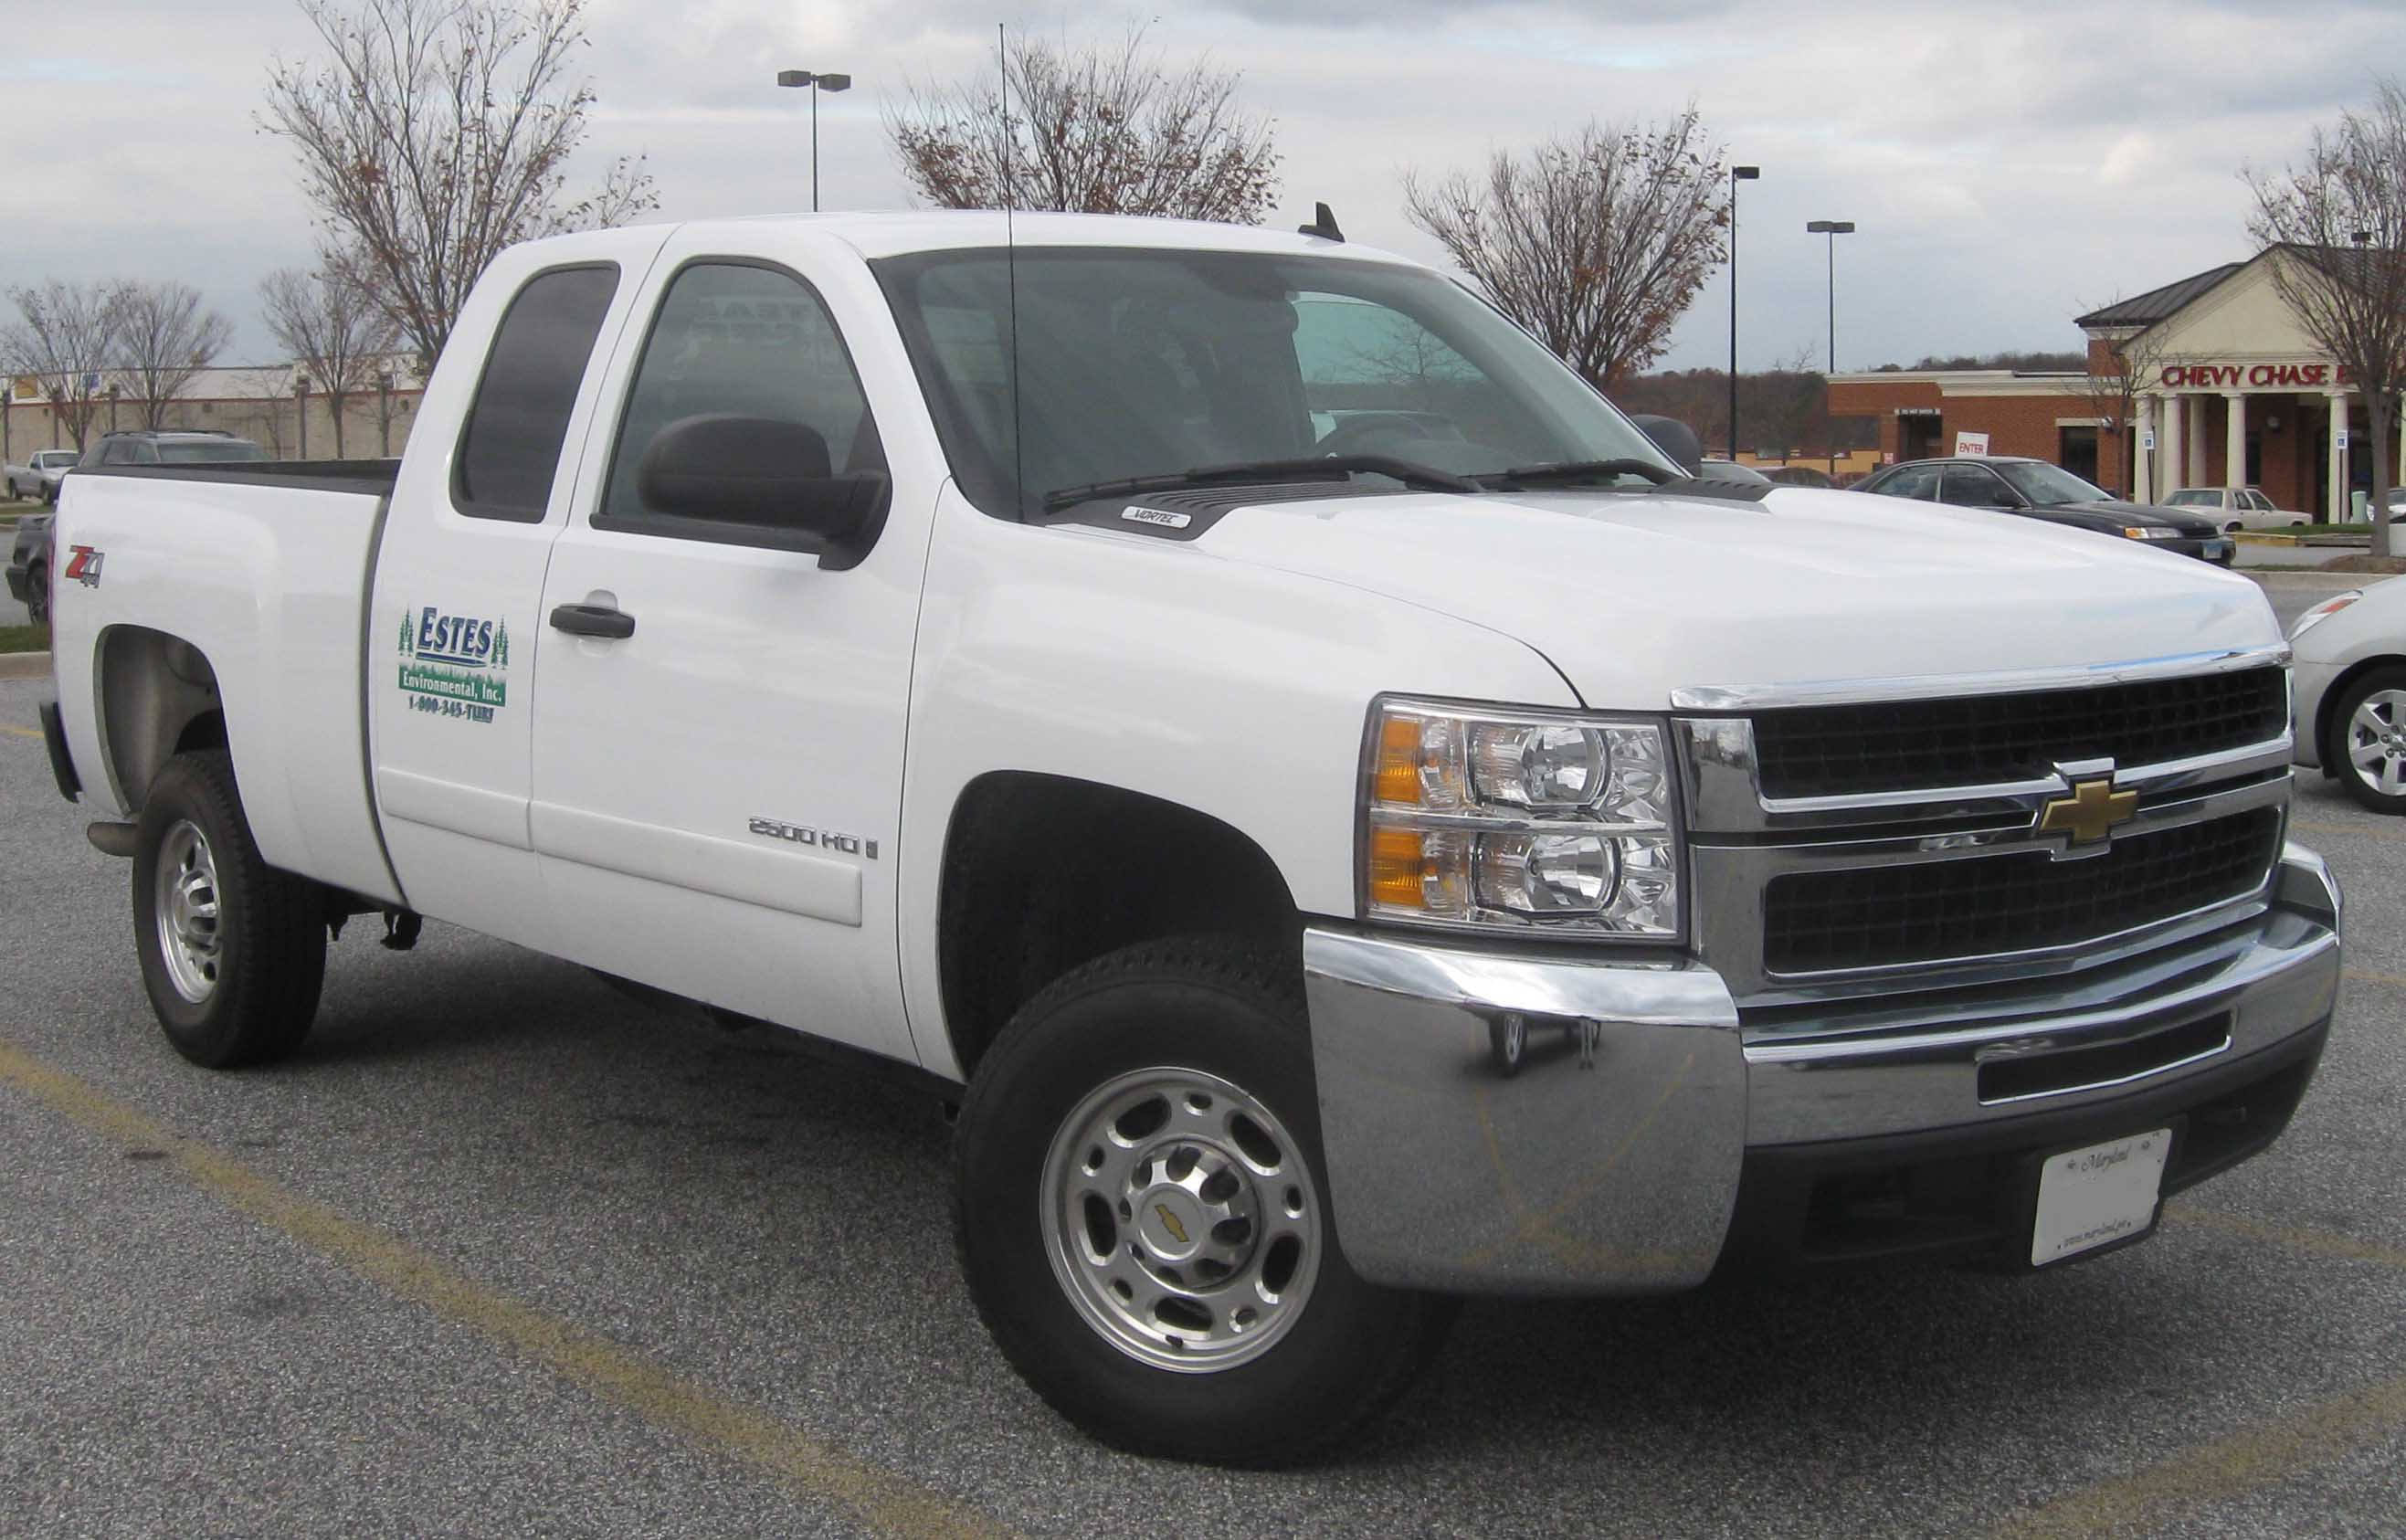 cab silverado chevrolet short ls pic cargurus ext bed cars overview